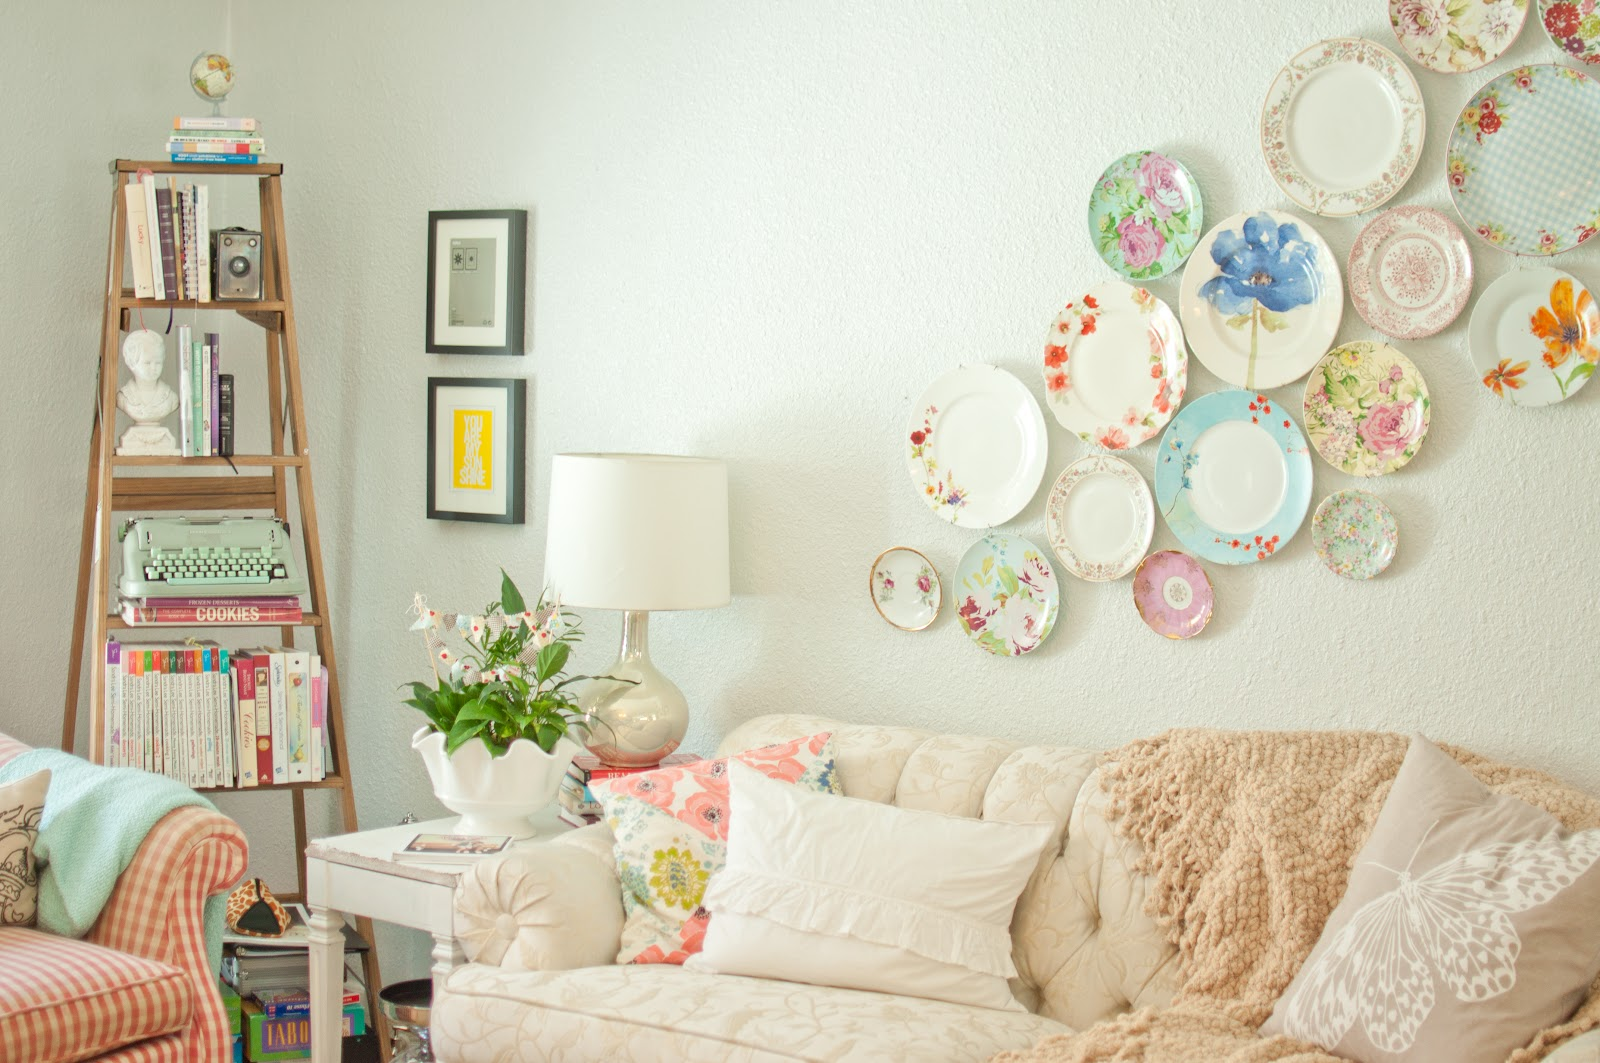 Decorating with Plates-1.jpg